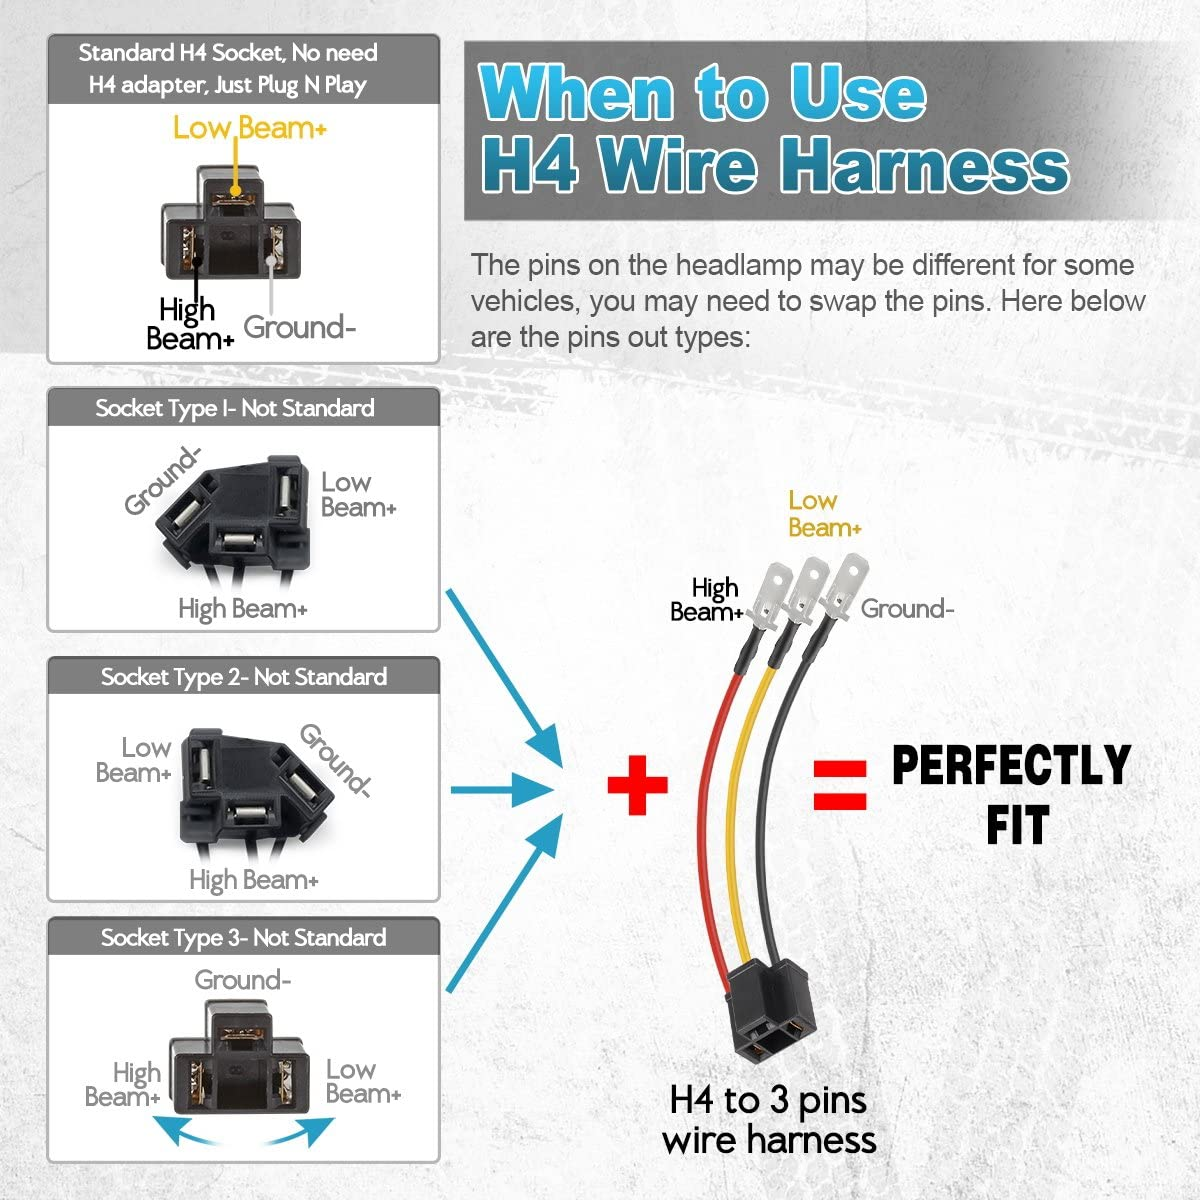 Amazon.com: Partsam H4 9003 Wiring Harness Headlights Wire Sockets H4 to 3  Pin Adapter for 4\ 7\ 5\ 6x8 inch Car Truck Pickup Heavy Duty  Headlamp (4PCS a Pack): Automotive [ 1200 x 1200 Pixel ]